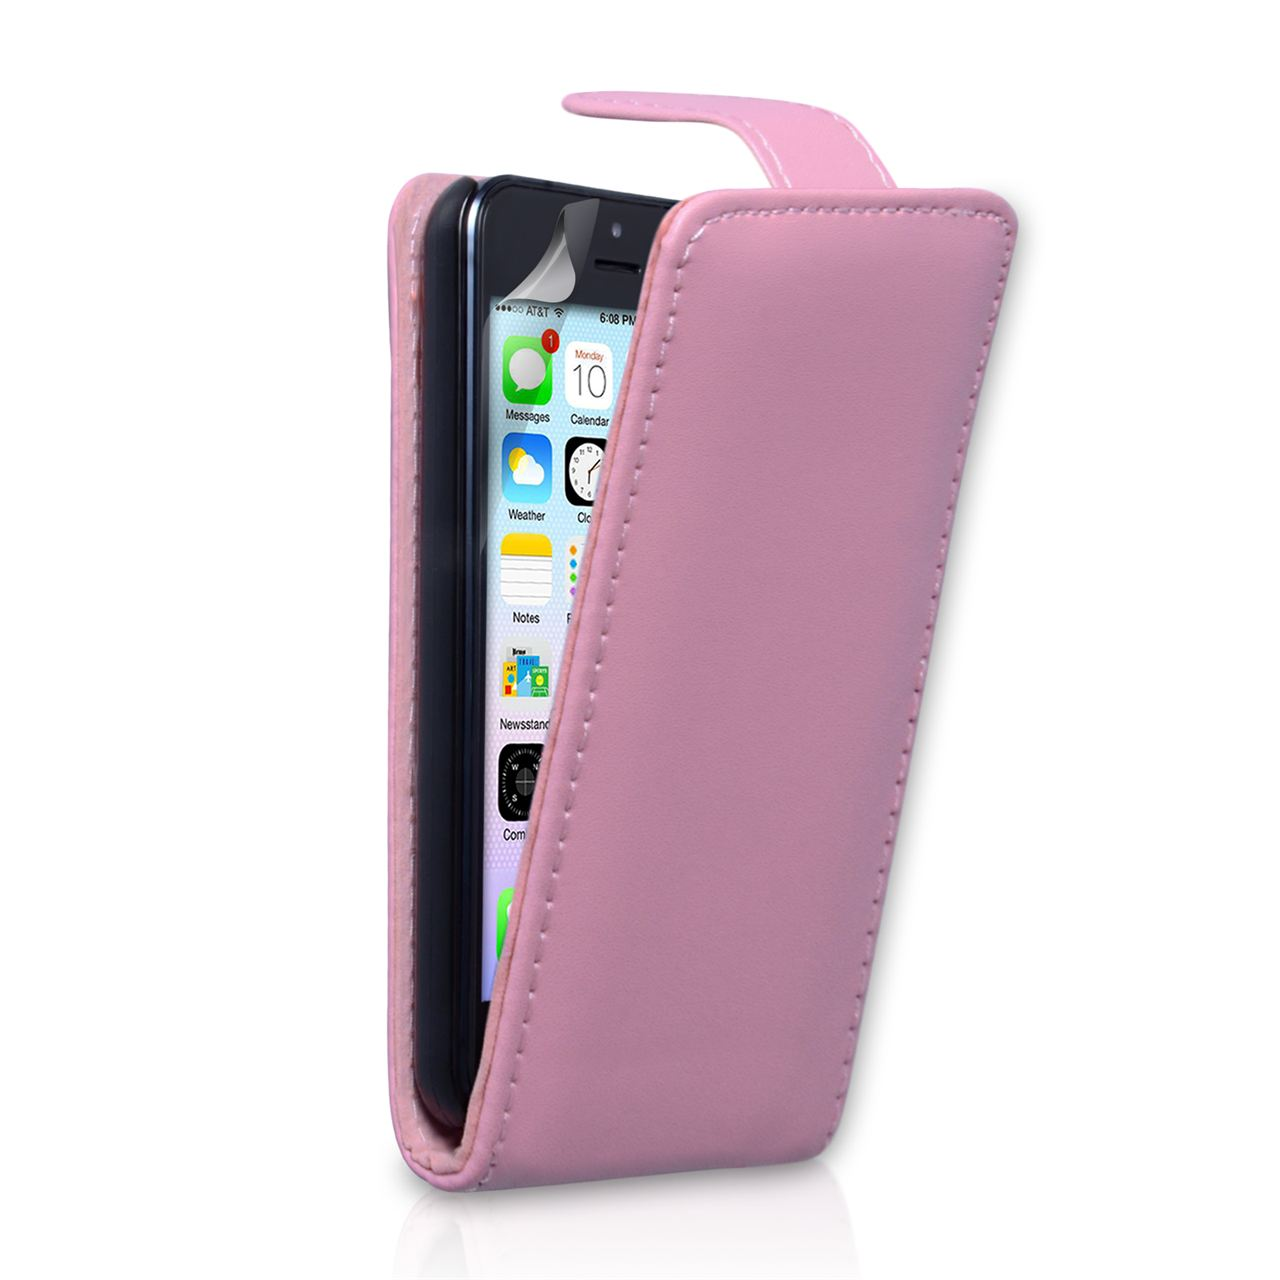 cheaper 47306 d8ed3 YouSave Accessories iPhone 5C Leather Effect Flip Case - Baby Pink